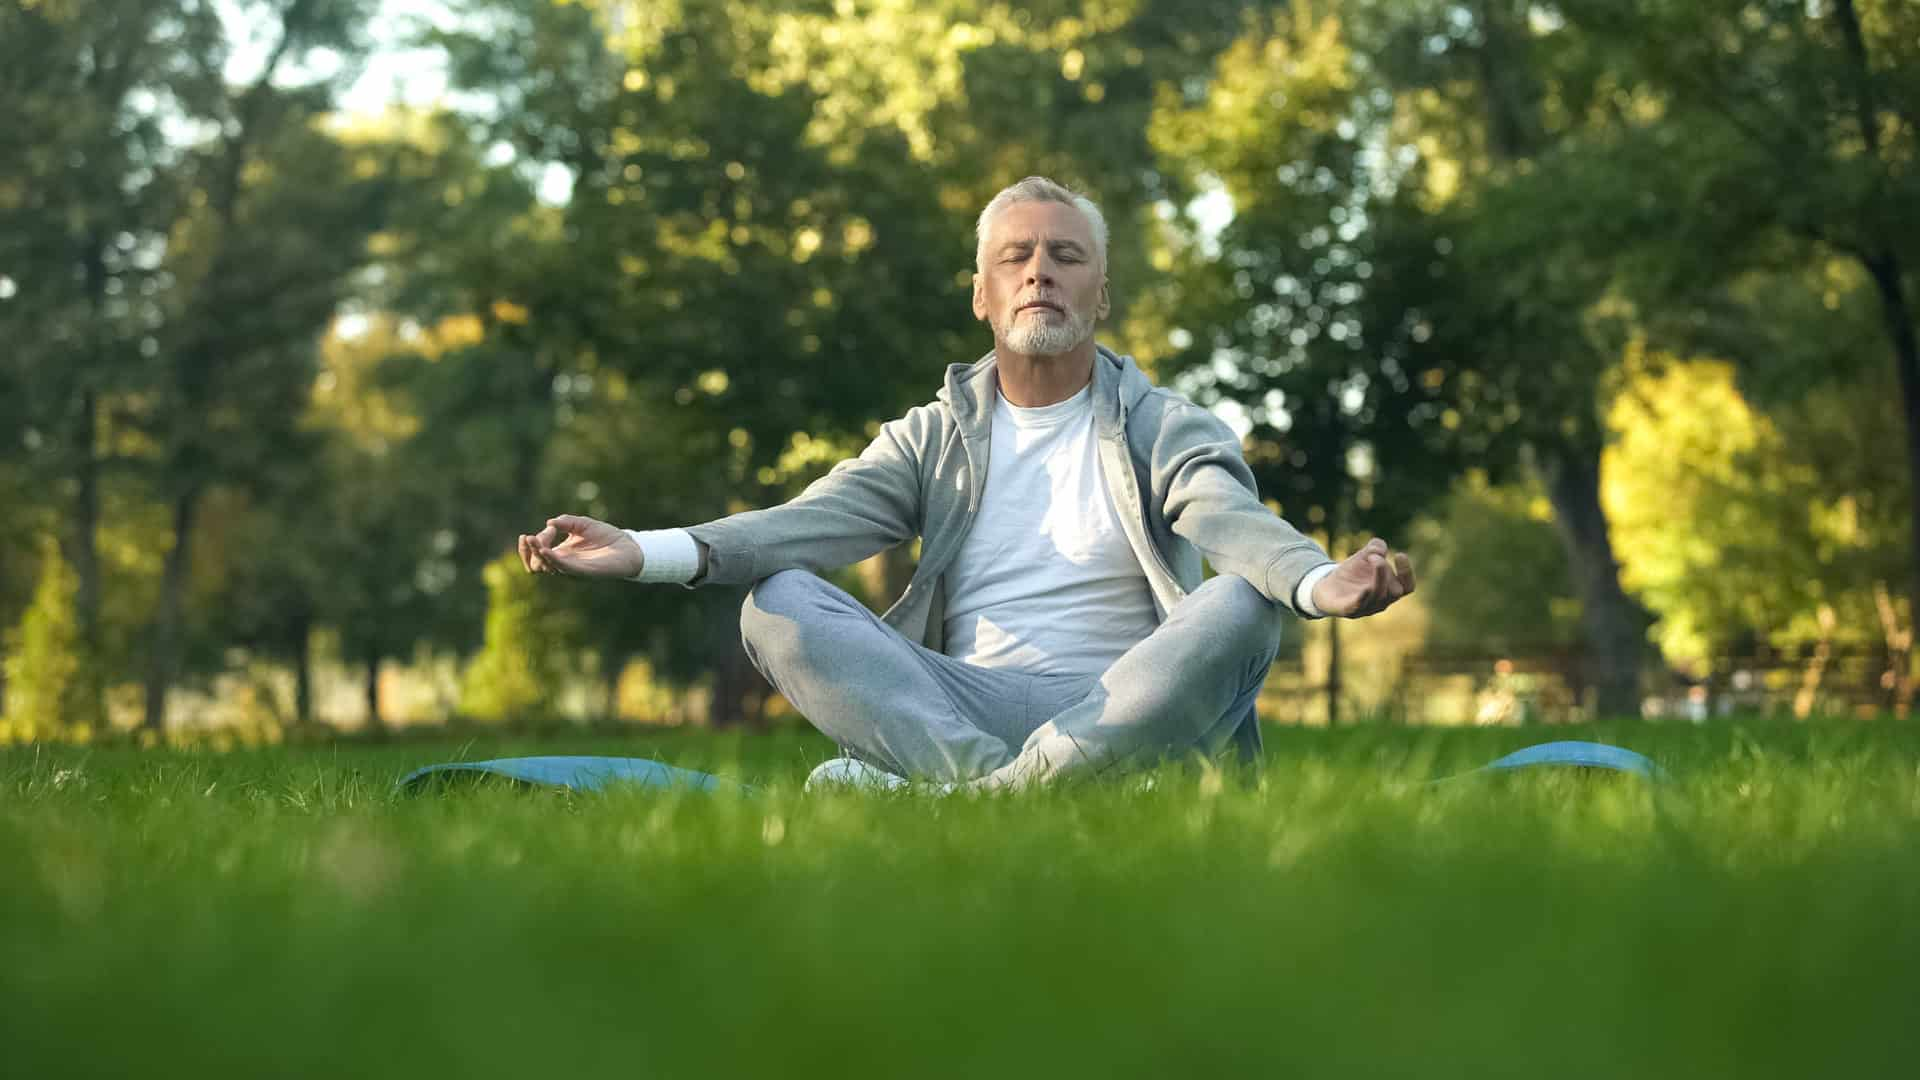 Healthy senior man meditating in park, sitting lotus pose on yoga mat, zen